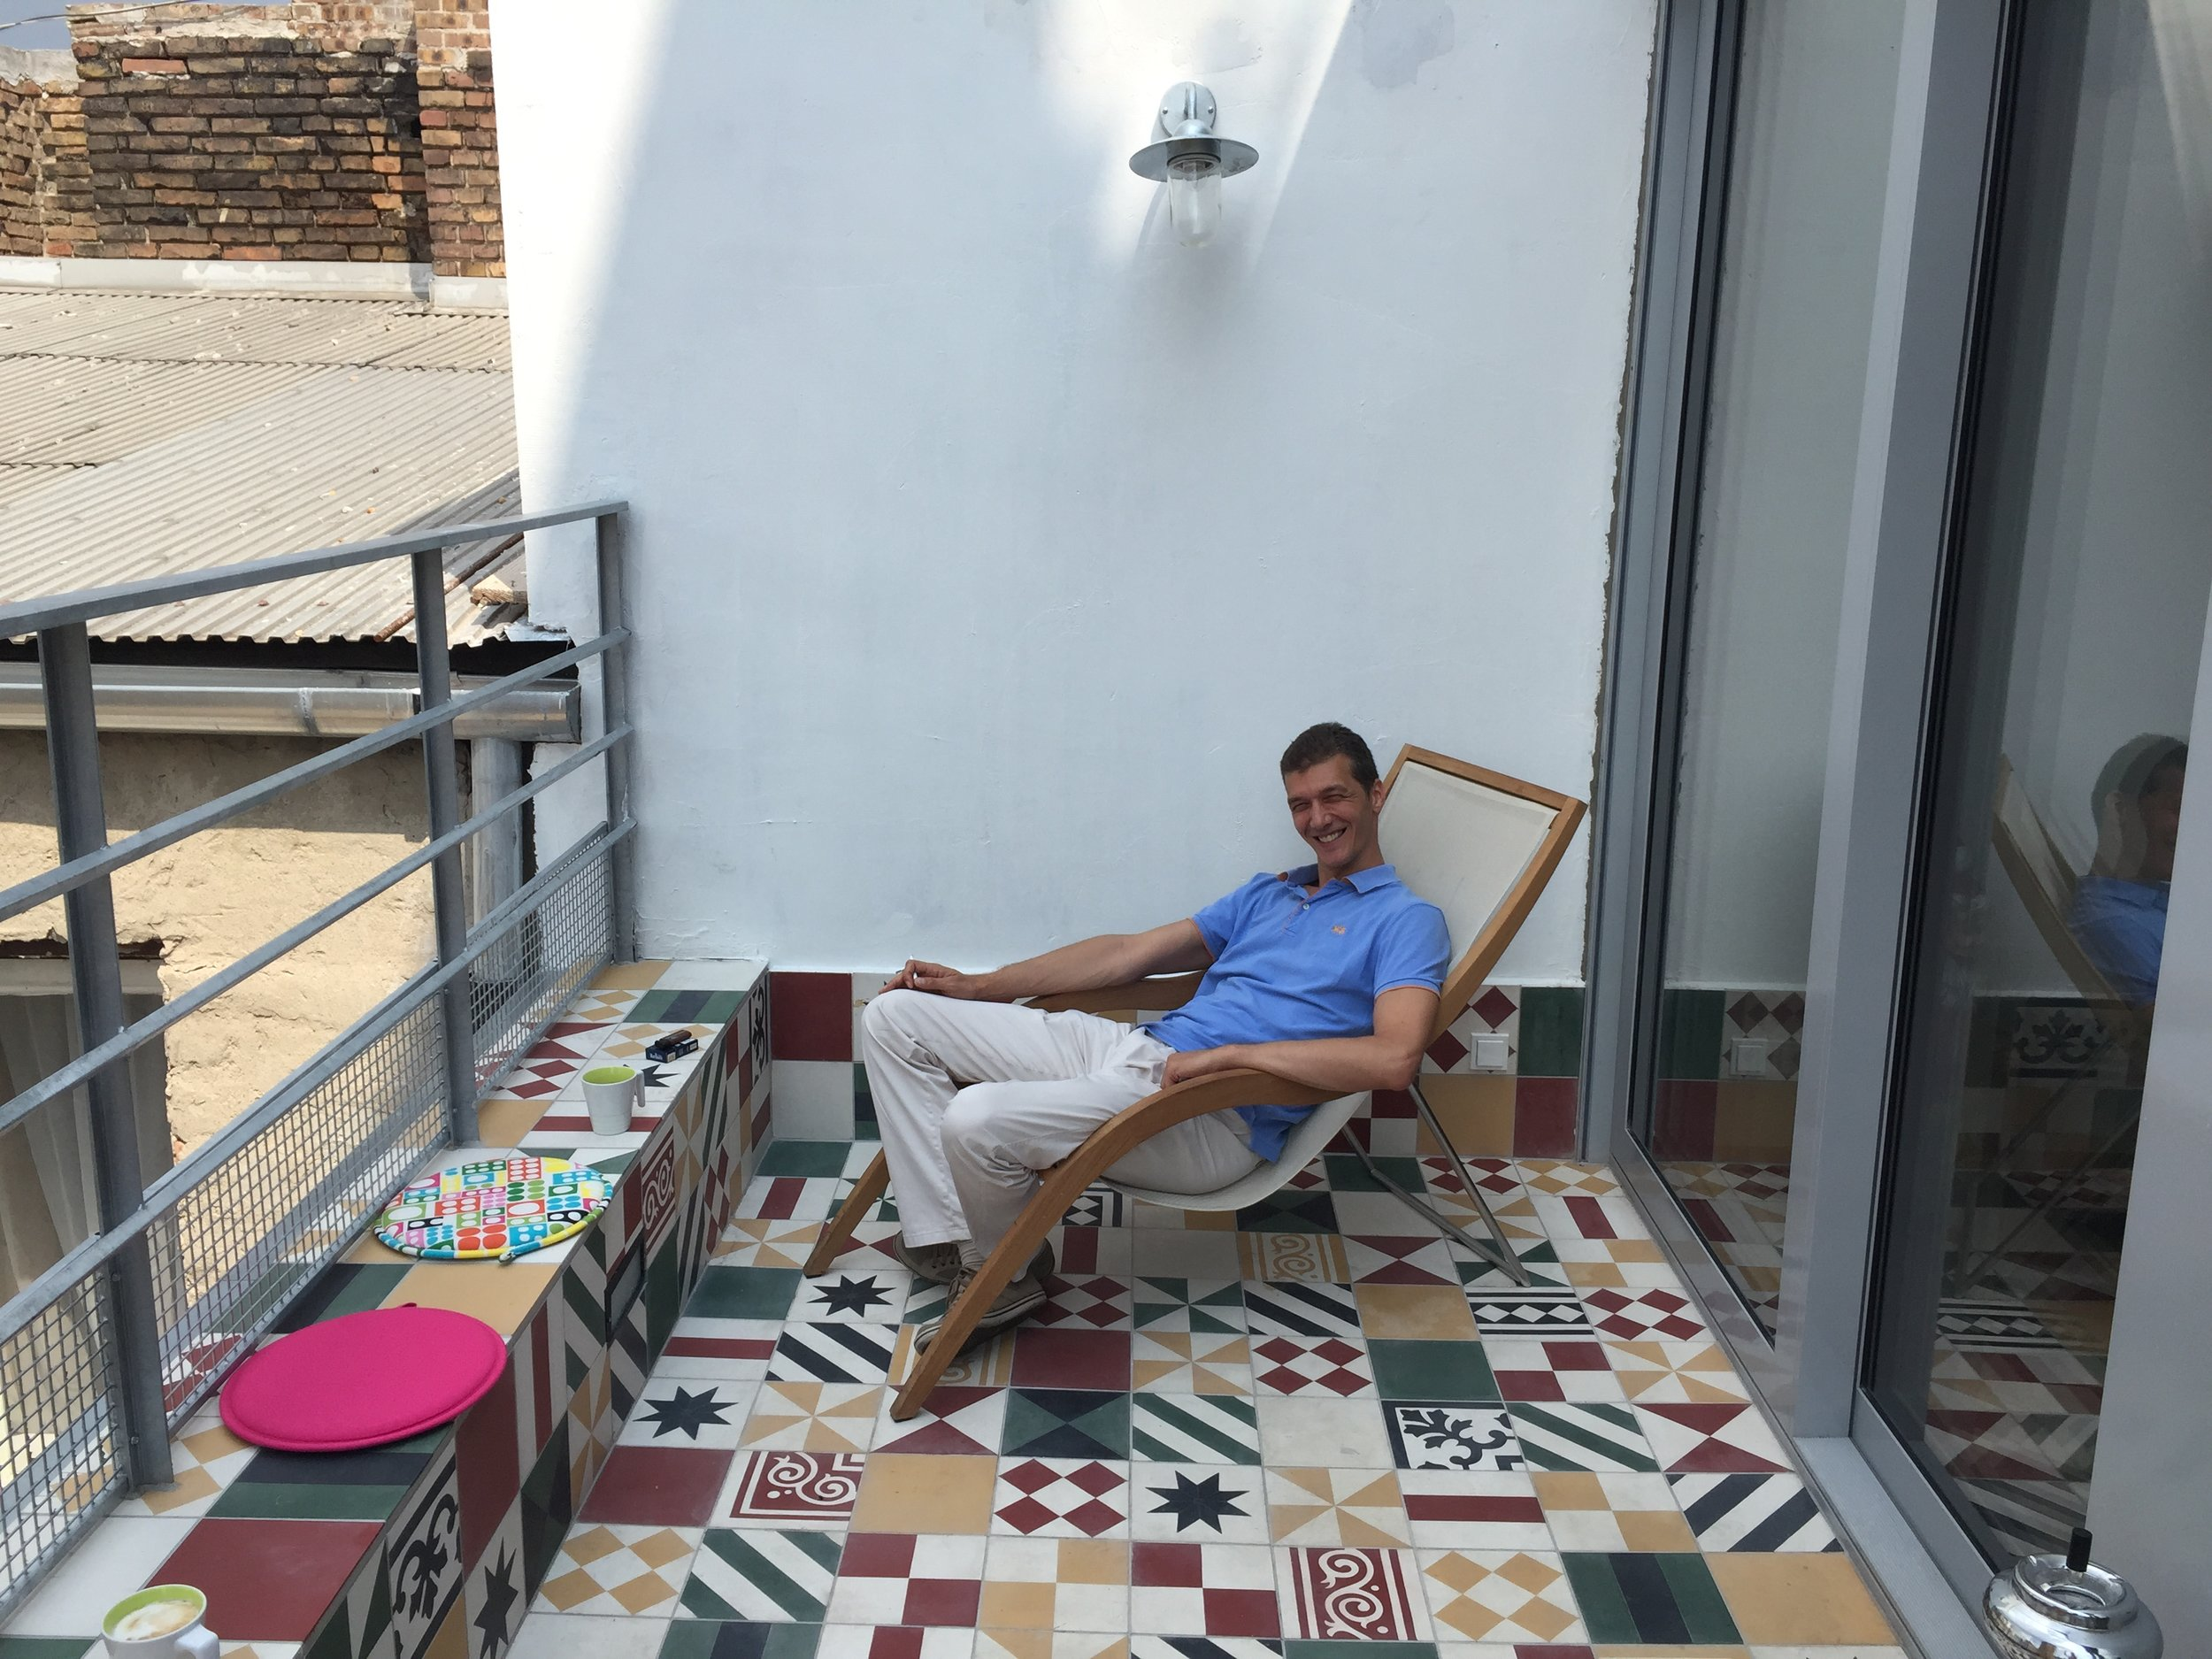 Zoltan relaxing after a hard day coding